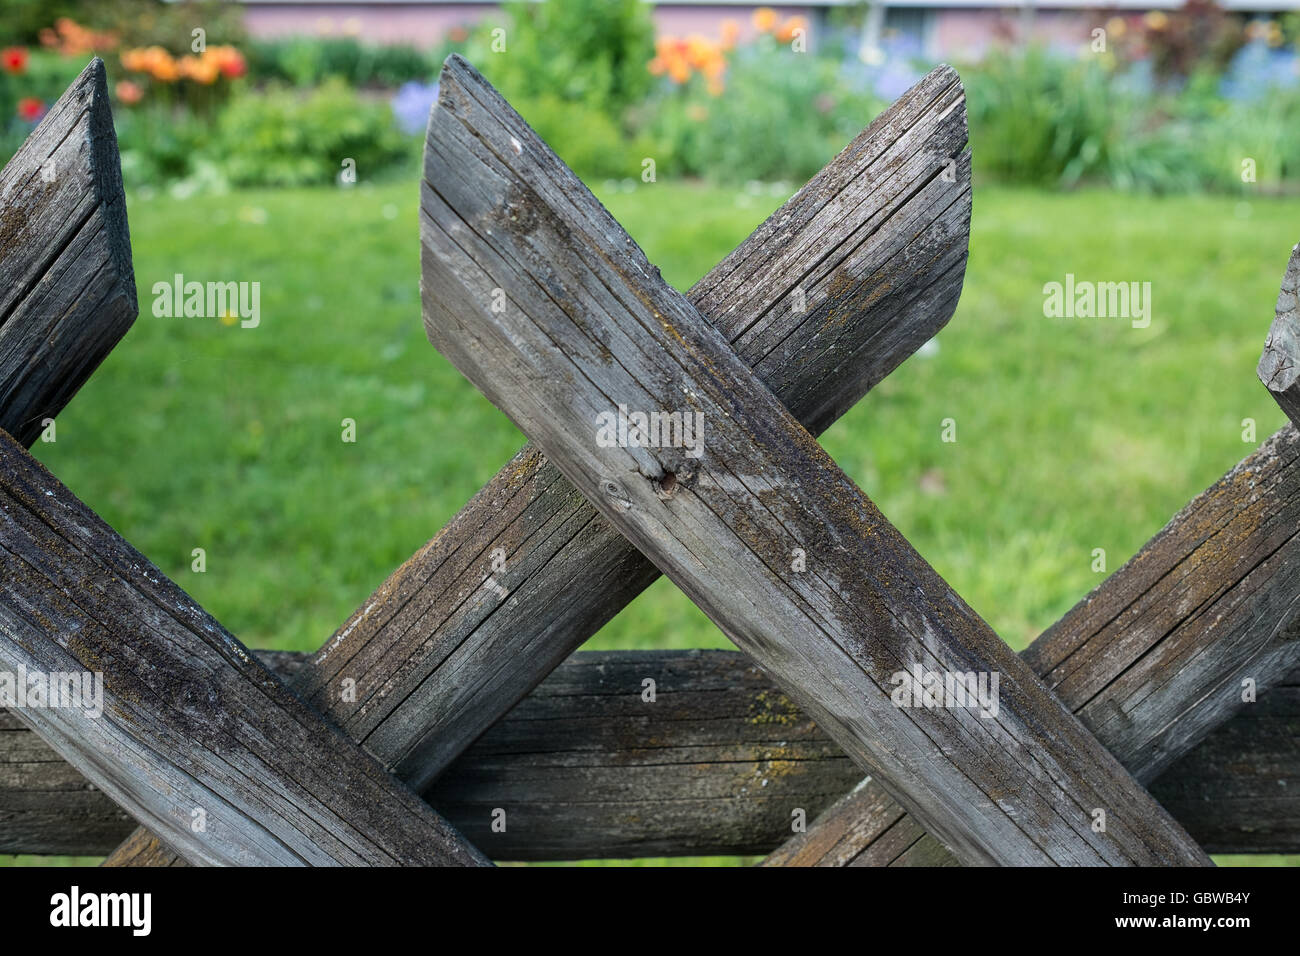 Old wooden fence in a front garden with blurred meadow and flowers Stock Photo